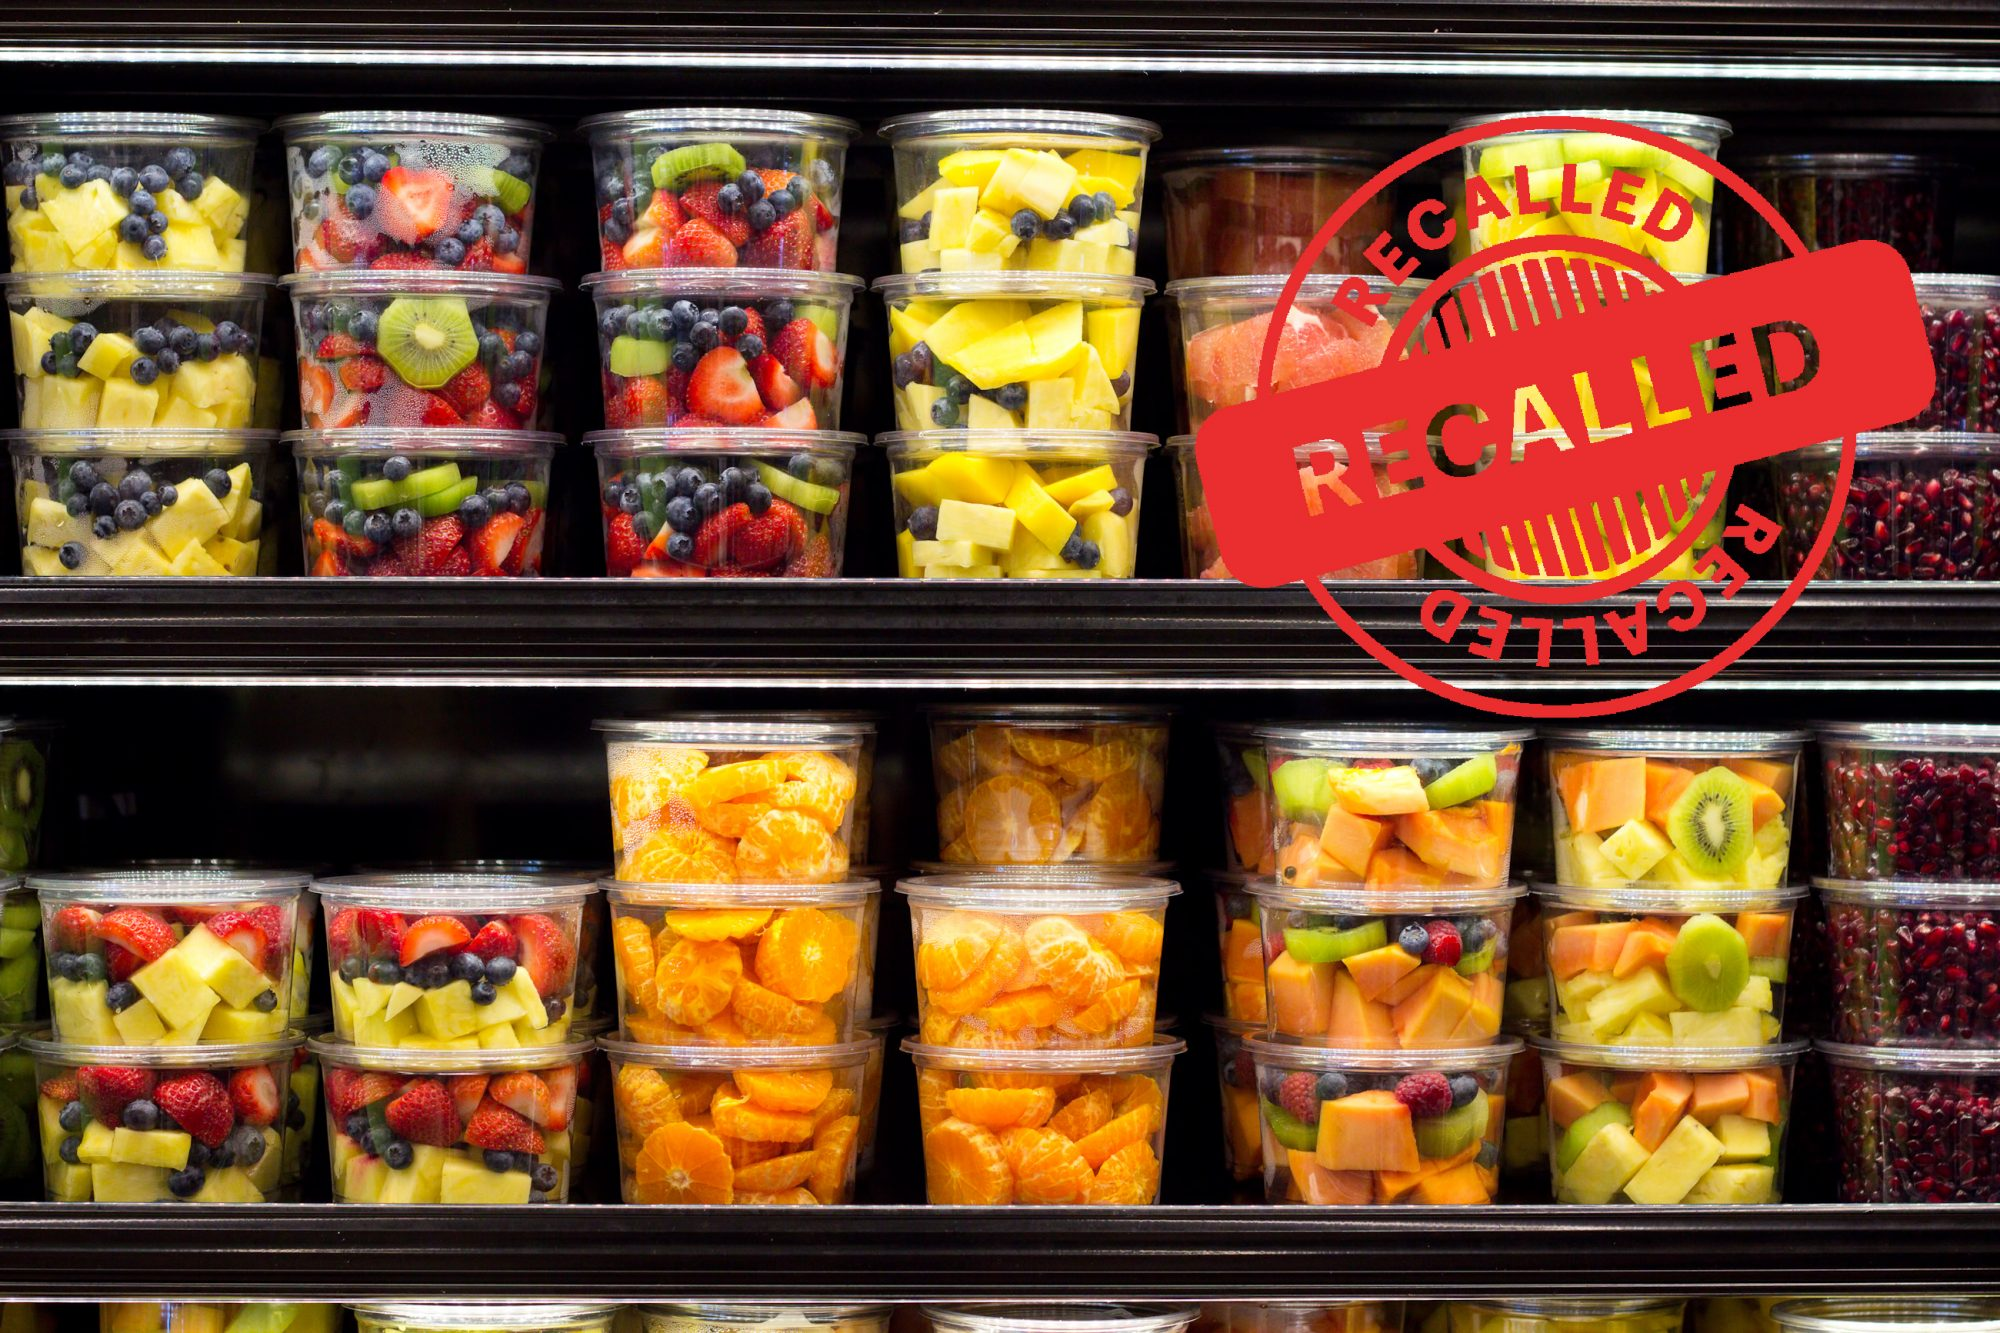 Pre-Cut Fruit Recalled in Four States After 30+ People Were Infected With Salmonella